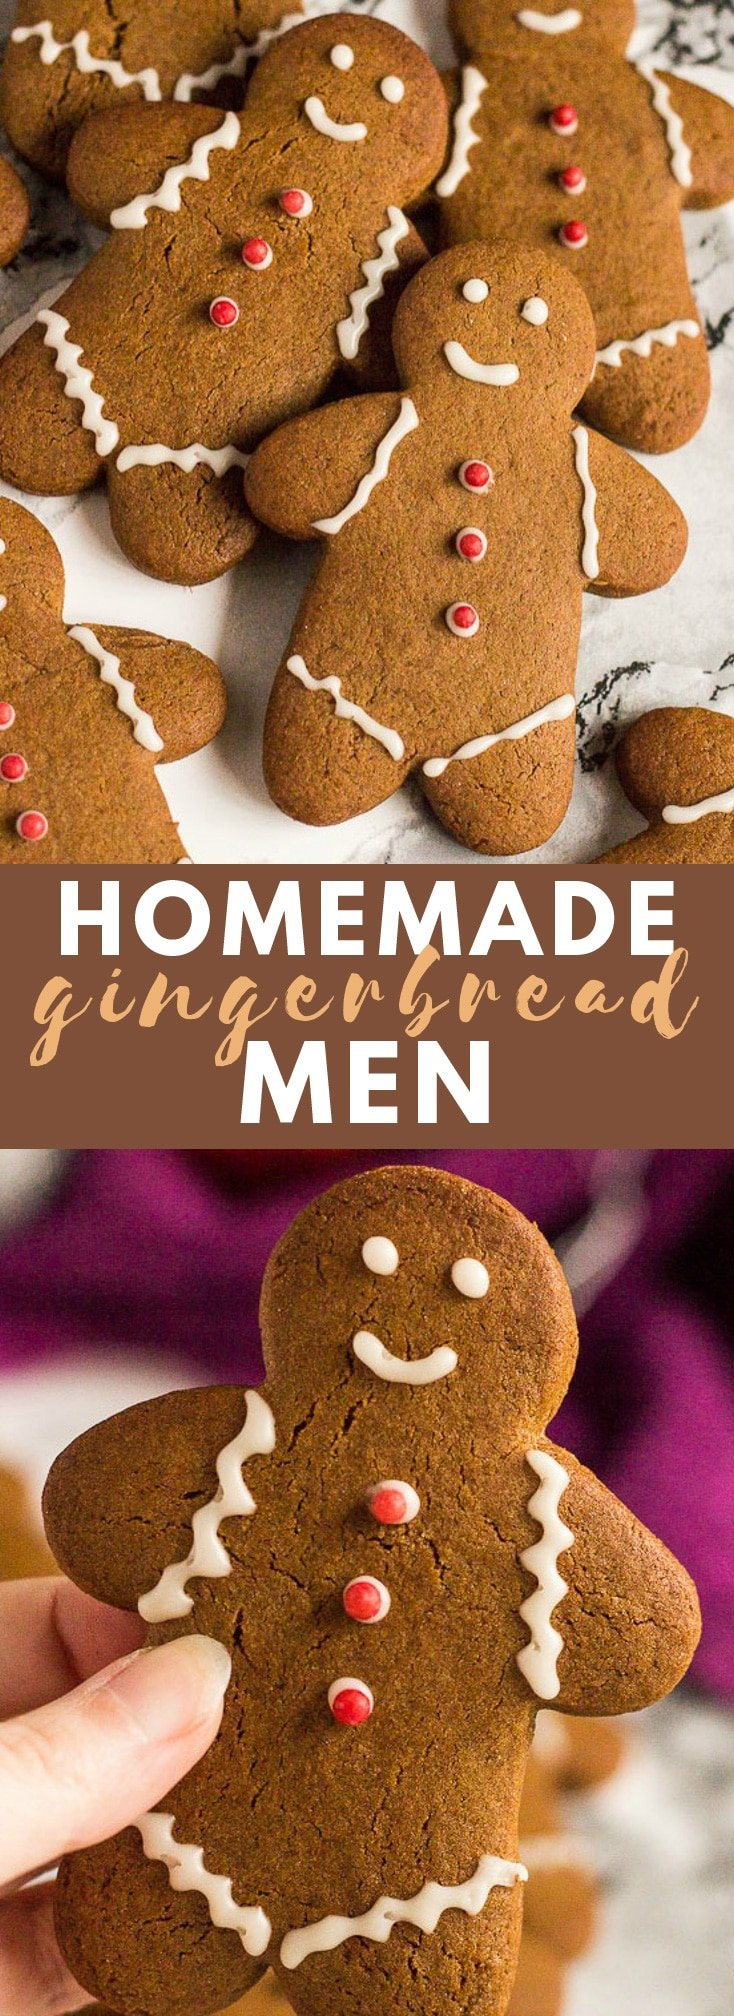 Gingerbread Men - Deliciously ginger-spiced cookies that are slightly soft on the inside, and crispy on the outside, and decorated with icing! #gingerbreadmen #gingercookies #cookierecipes #christmascookies #christmasrecipes